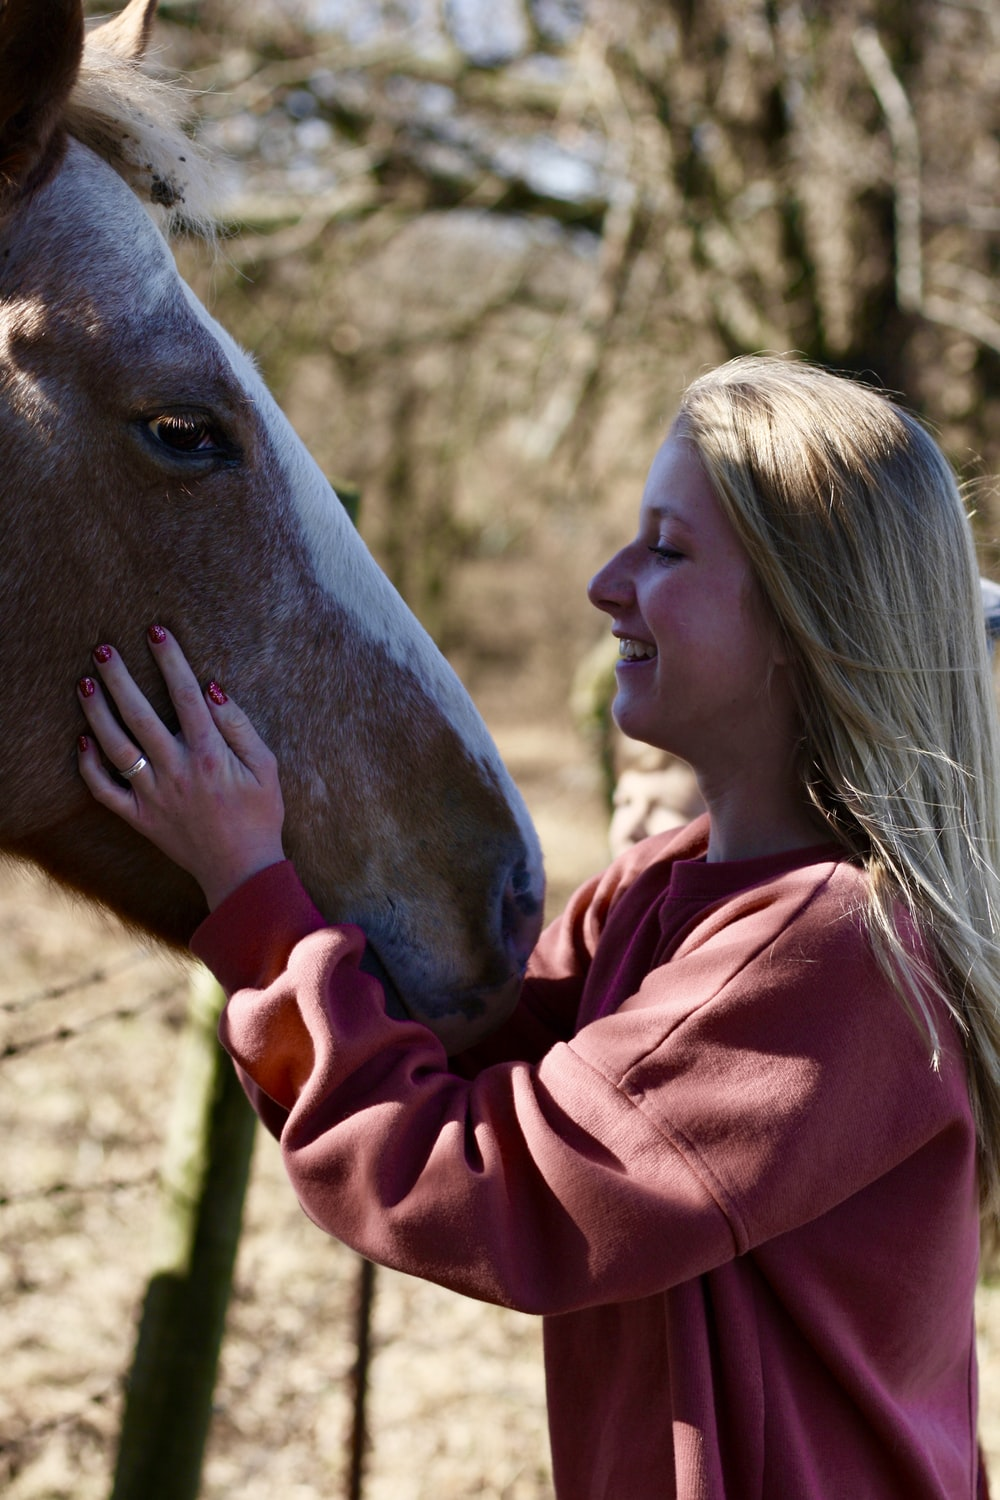 woman smiling and facing horse